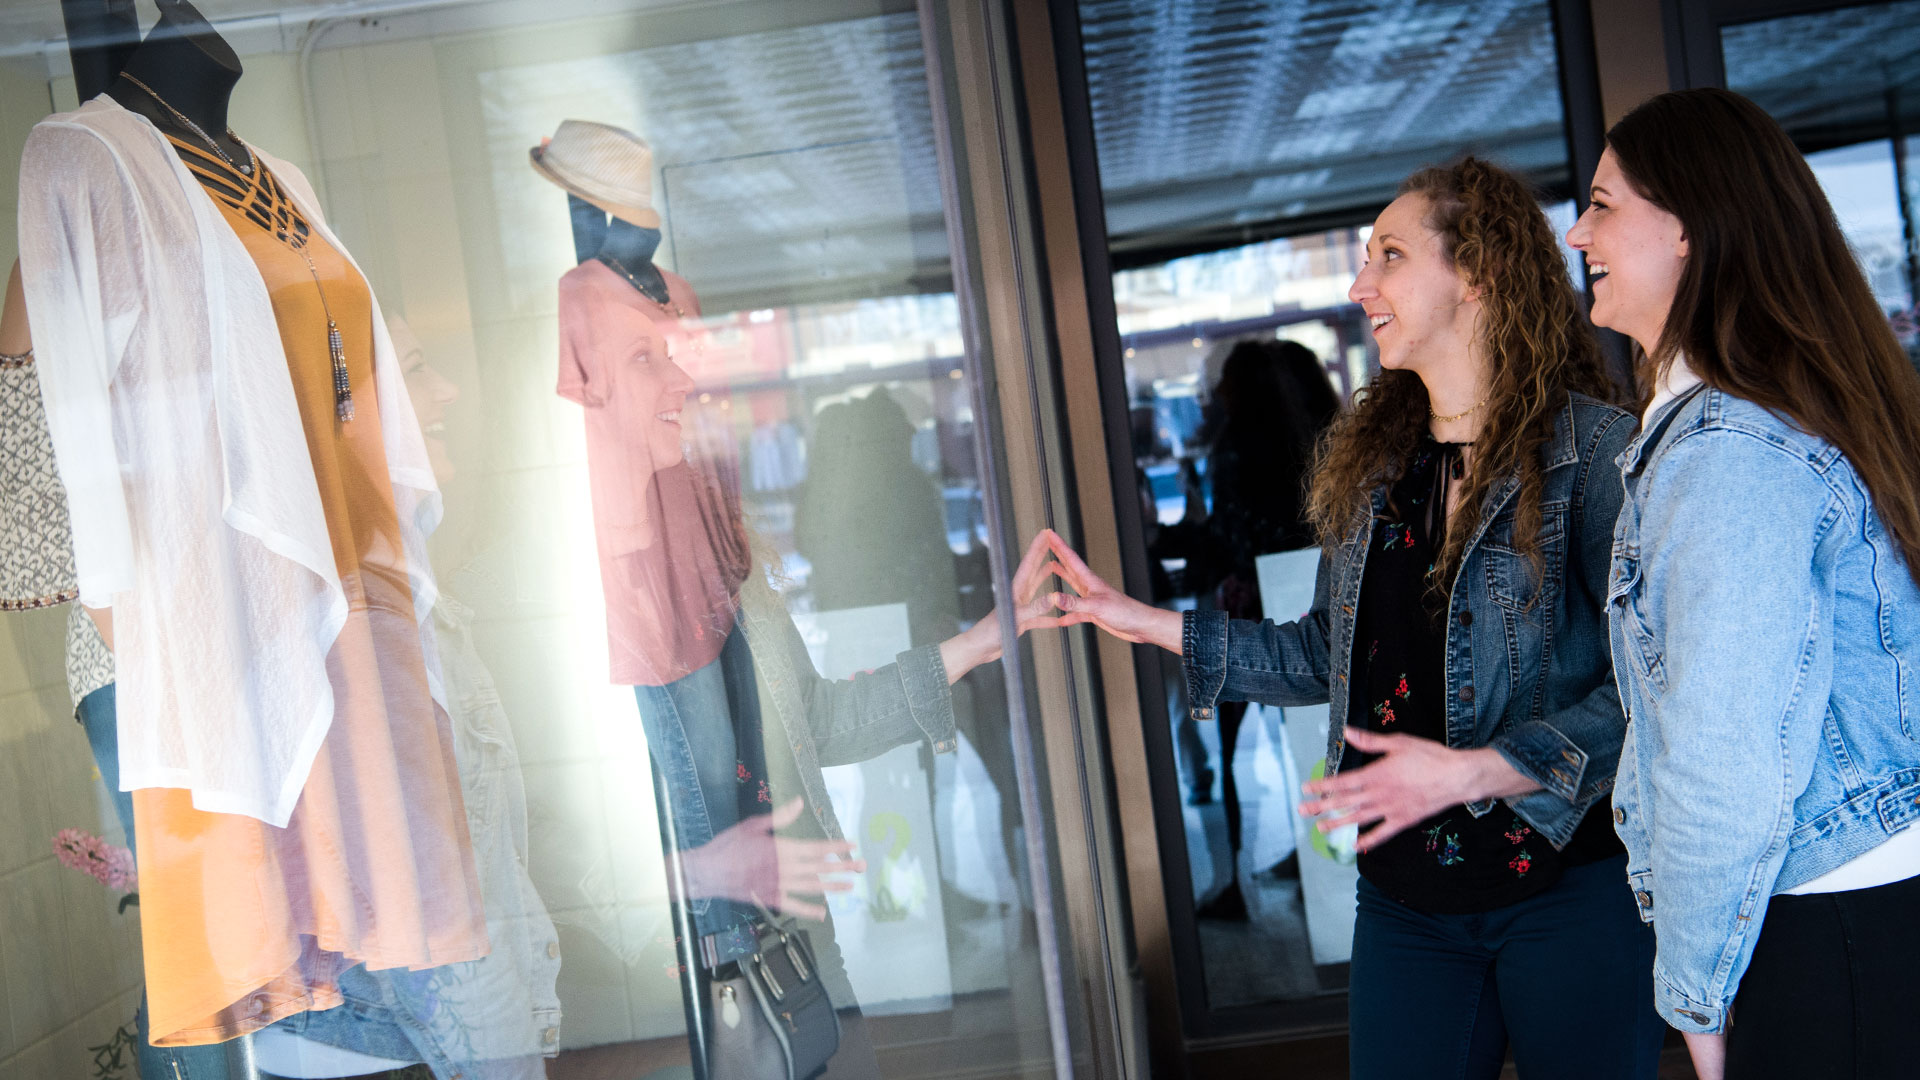 WSC students look at fashion merchandising in store window